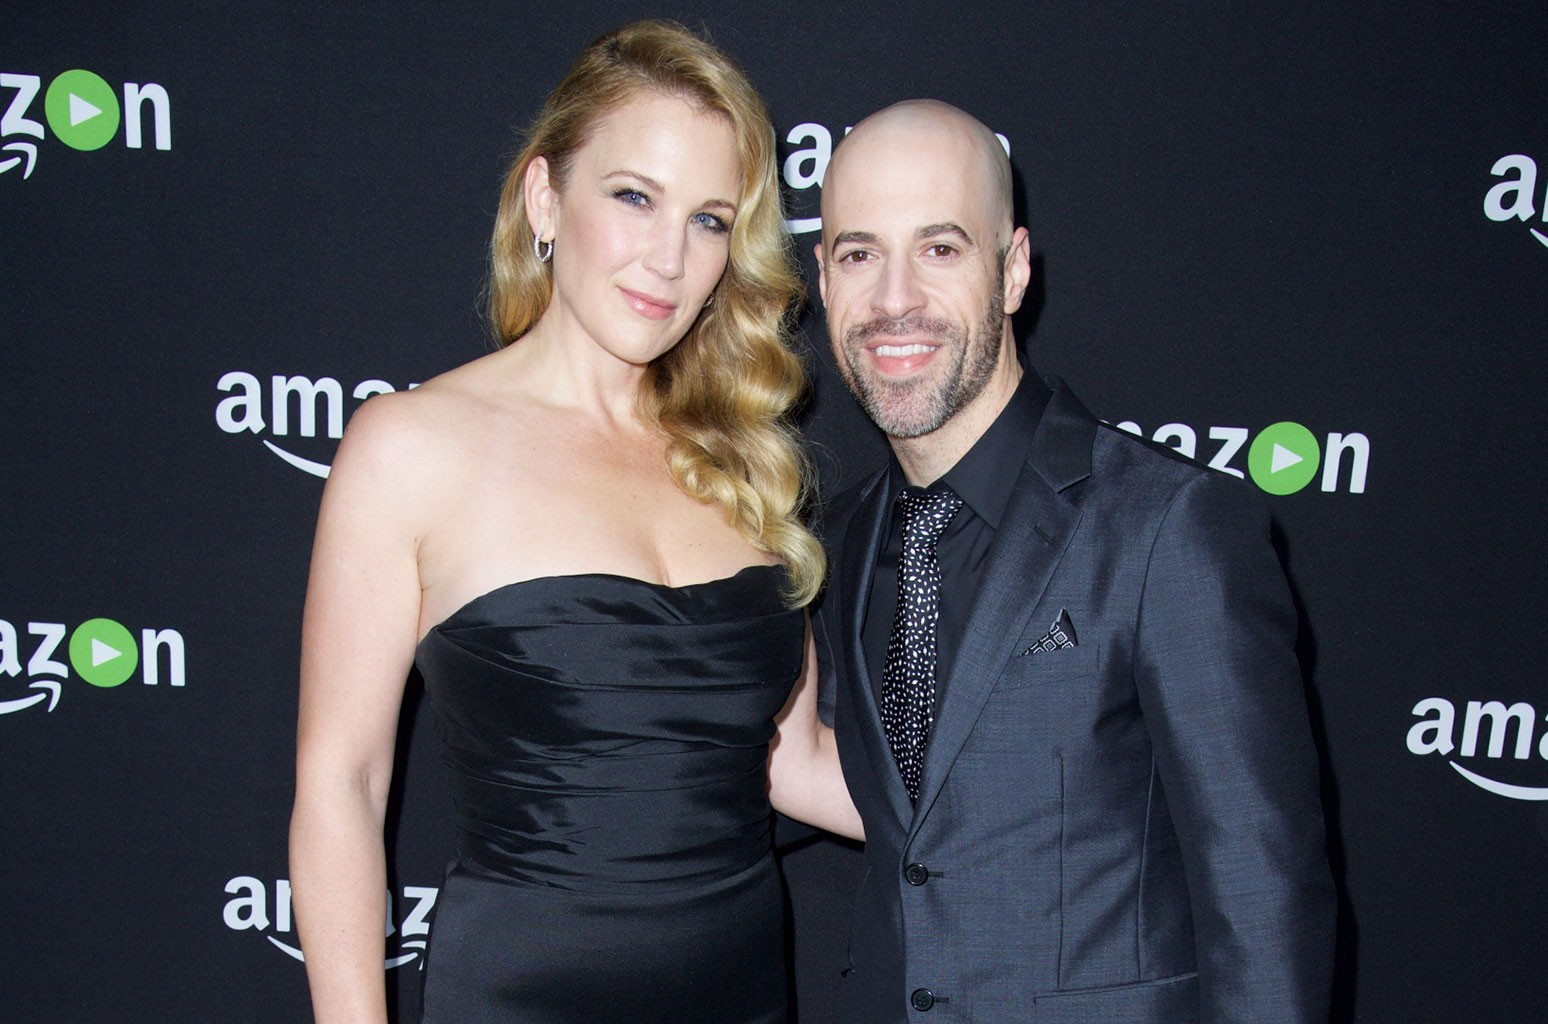 Chris Daughtry S Wife Deanna Comes Out As Bisexual In New Interview Billboard Billboard